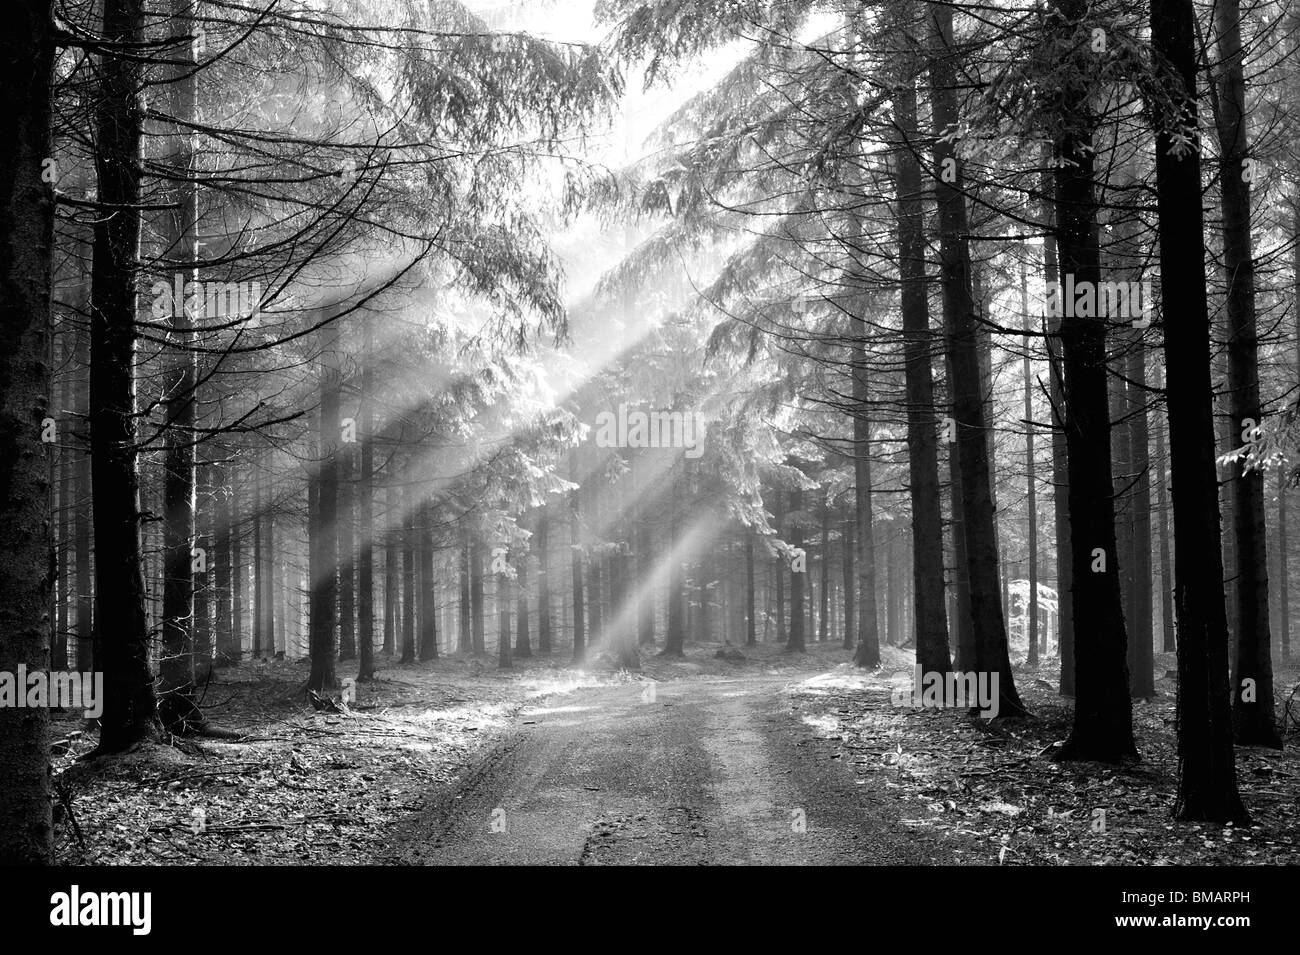 mystical forest - conifer forest in the early morning - a film of mist - autumn scenery - Stock Image